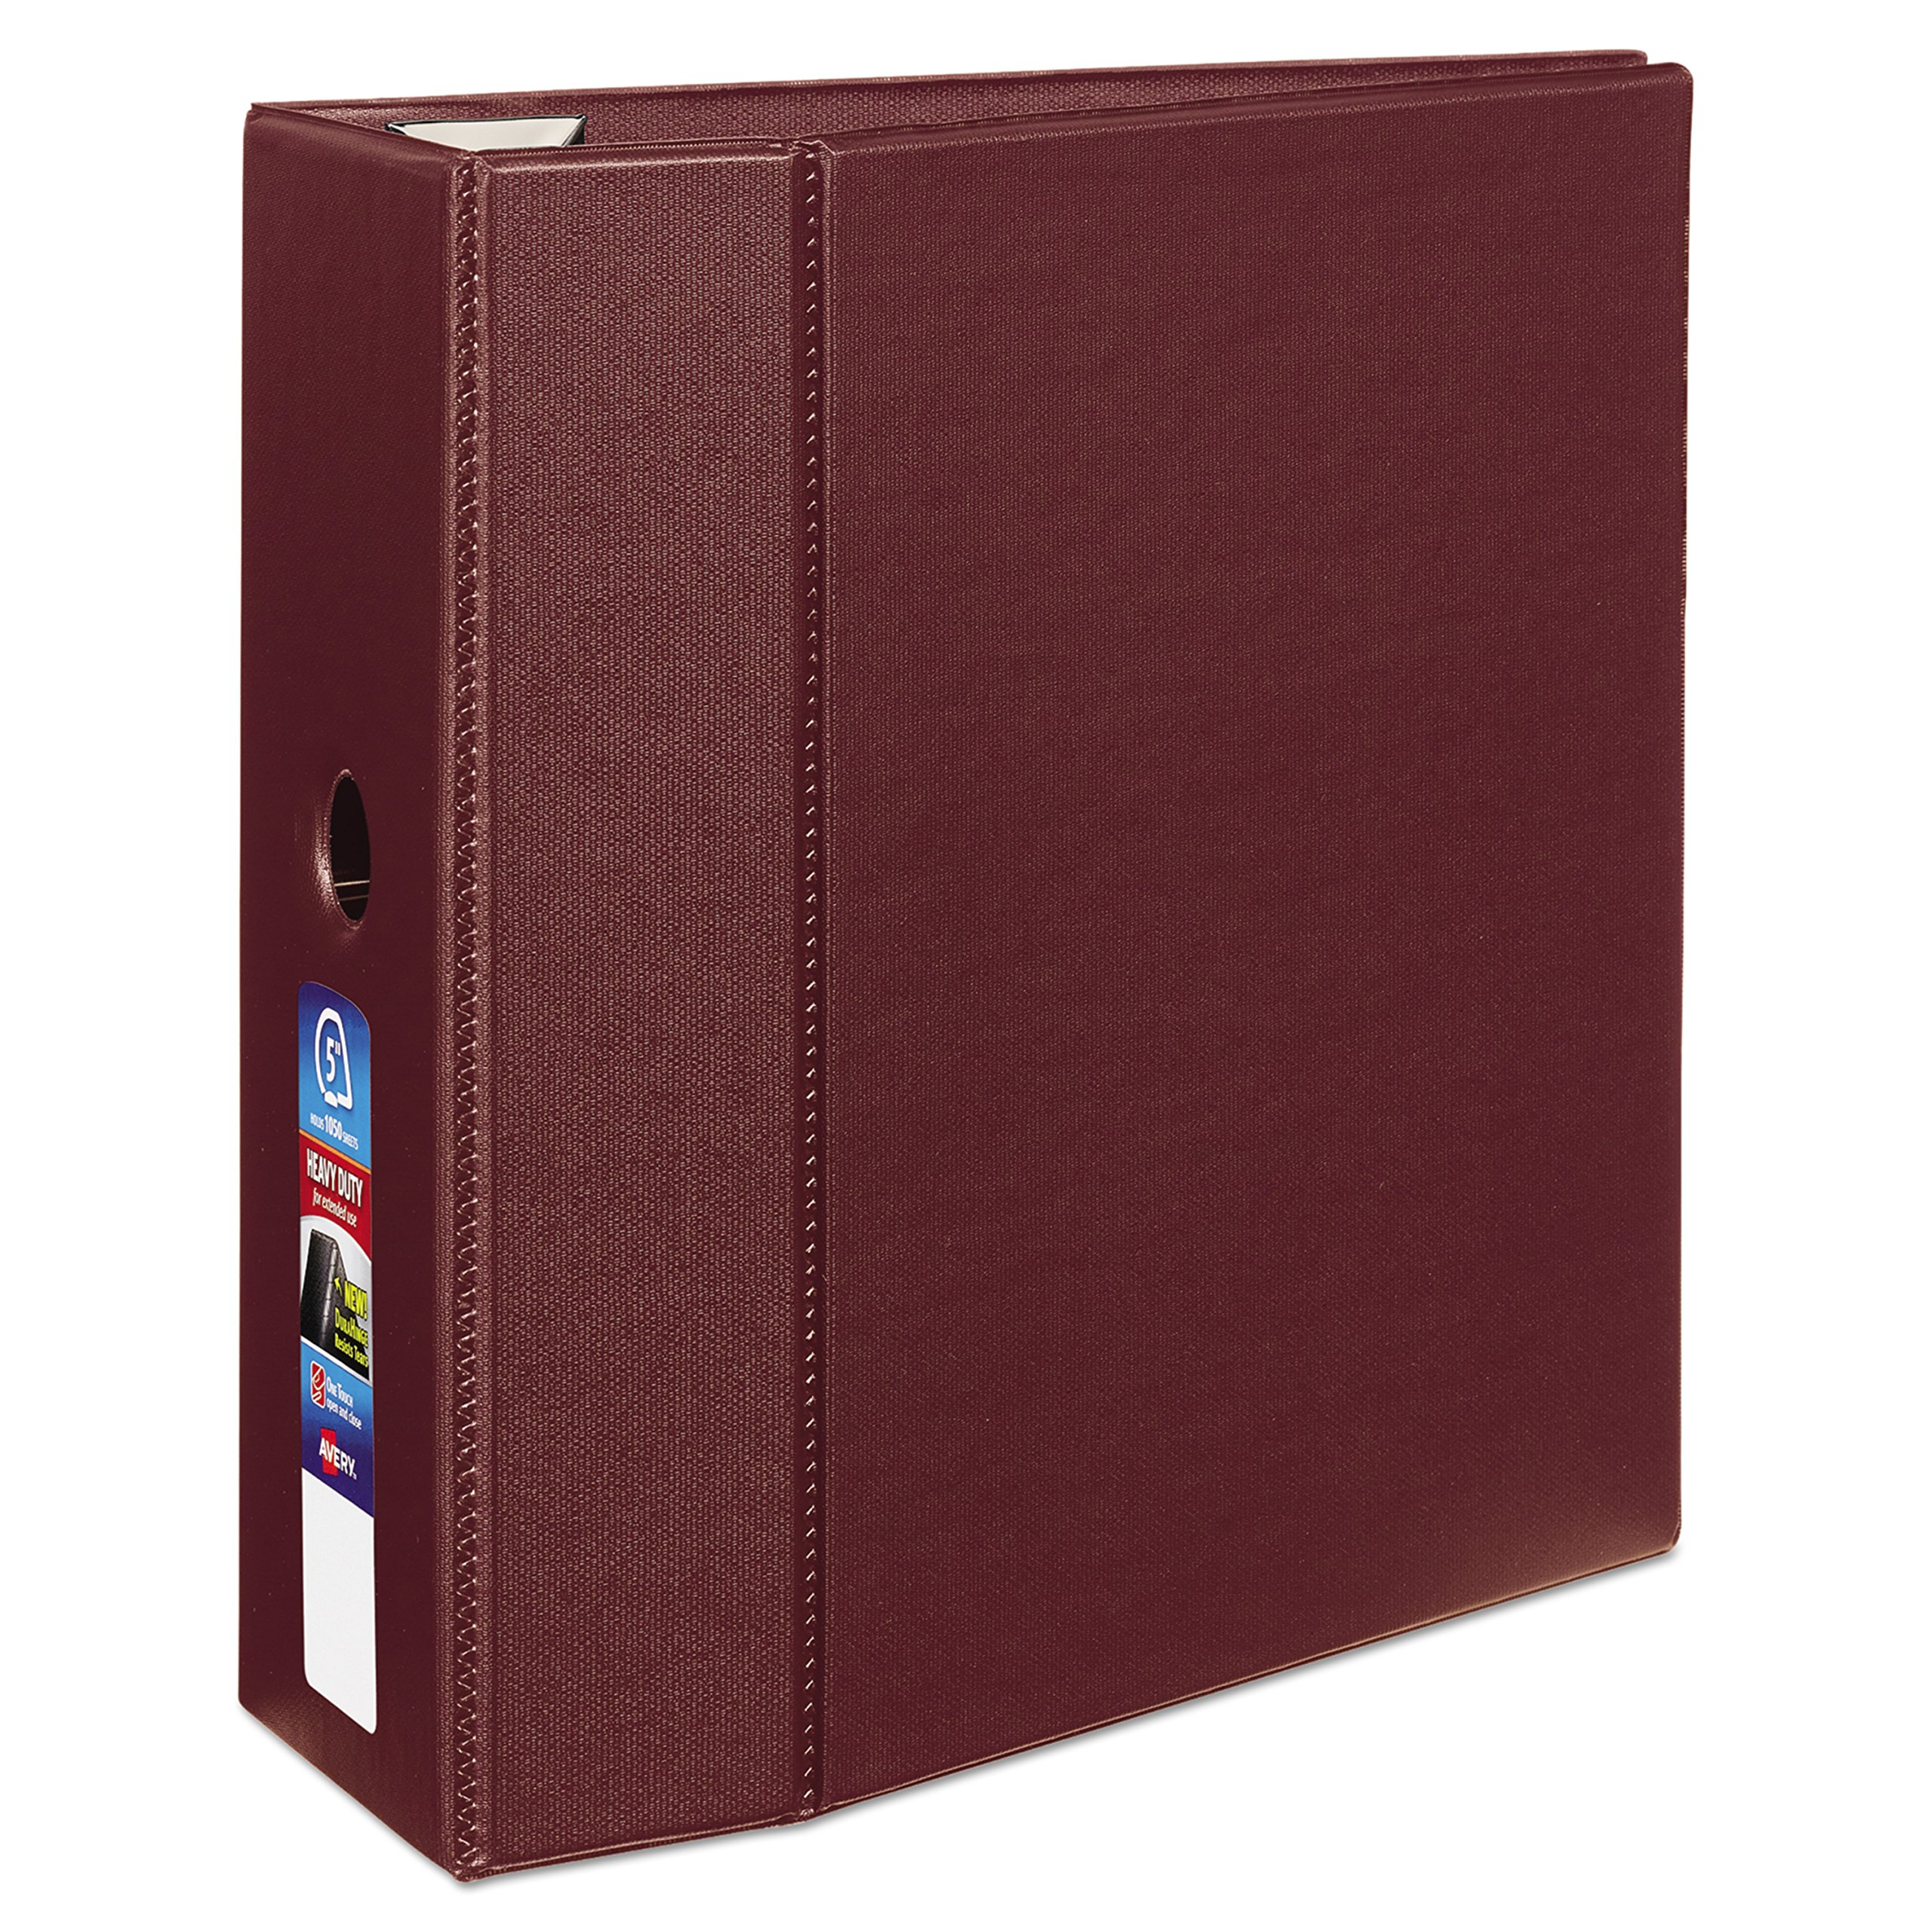 Avery Heavy-Duty Binder with 5-Inch One Touch EZD Ring, Maroon (79366) by AVERY